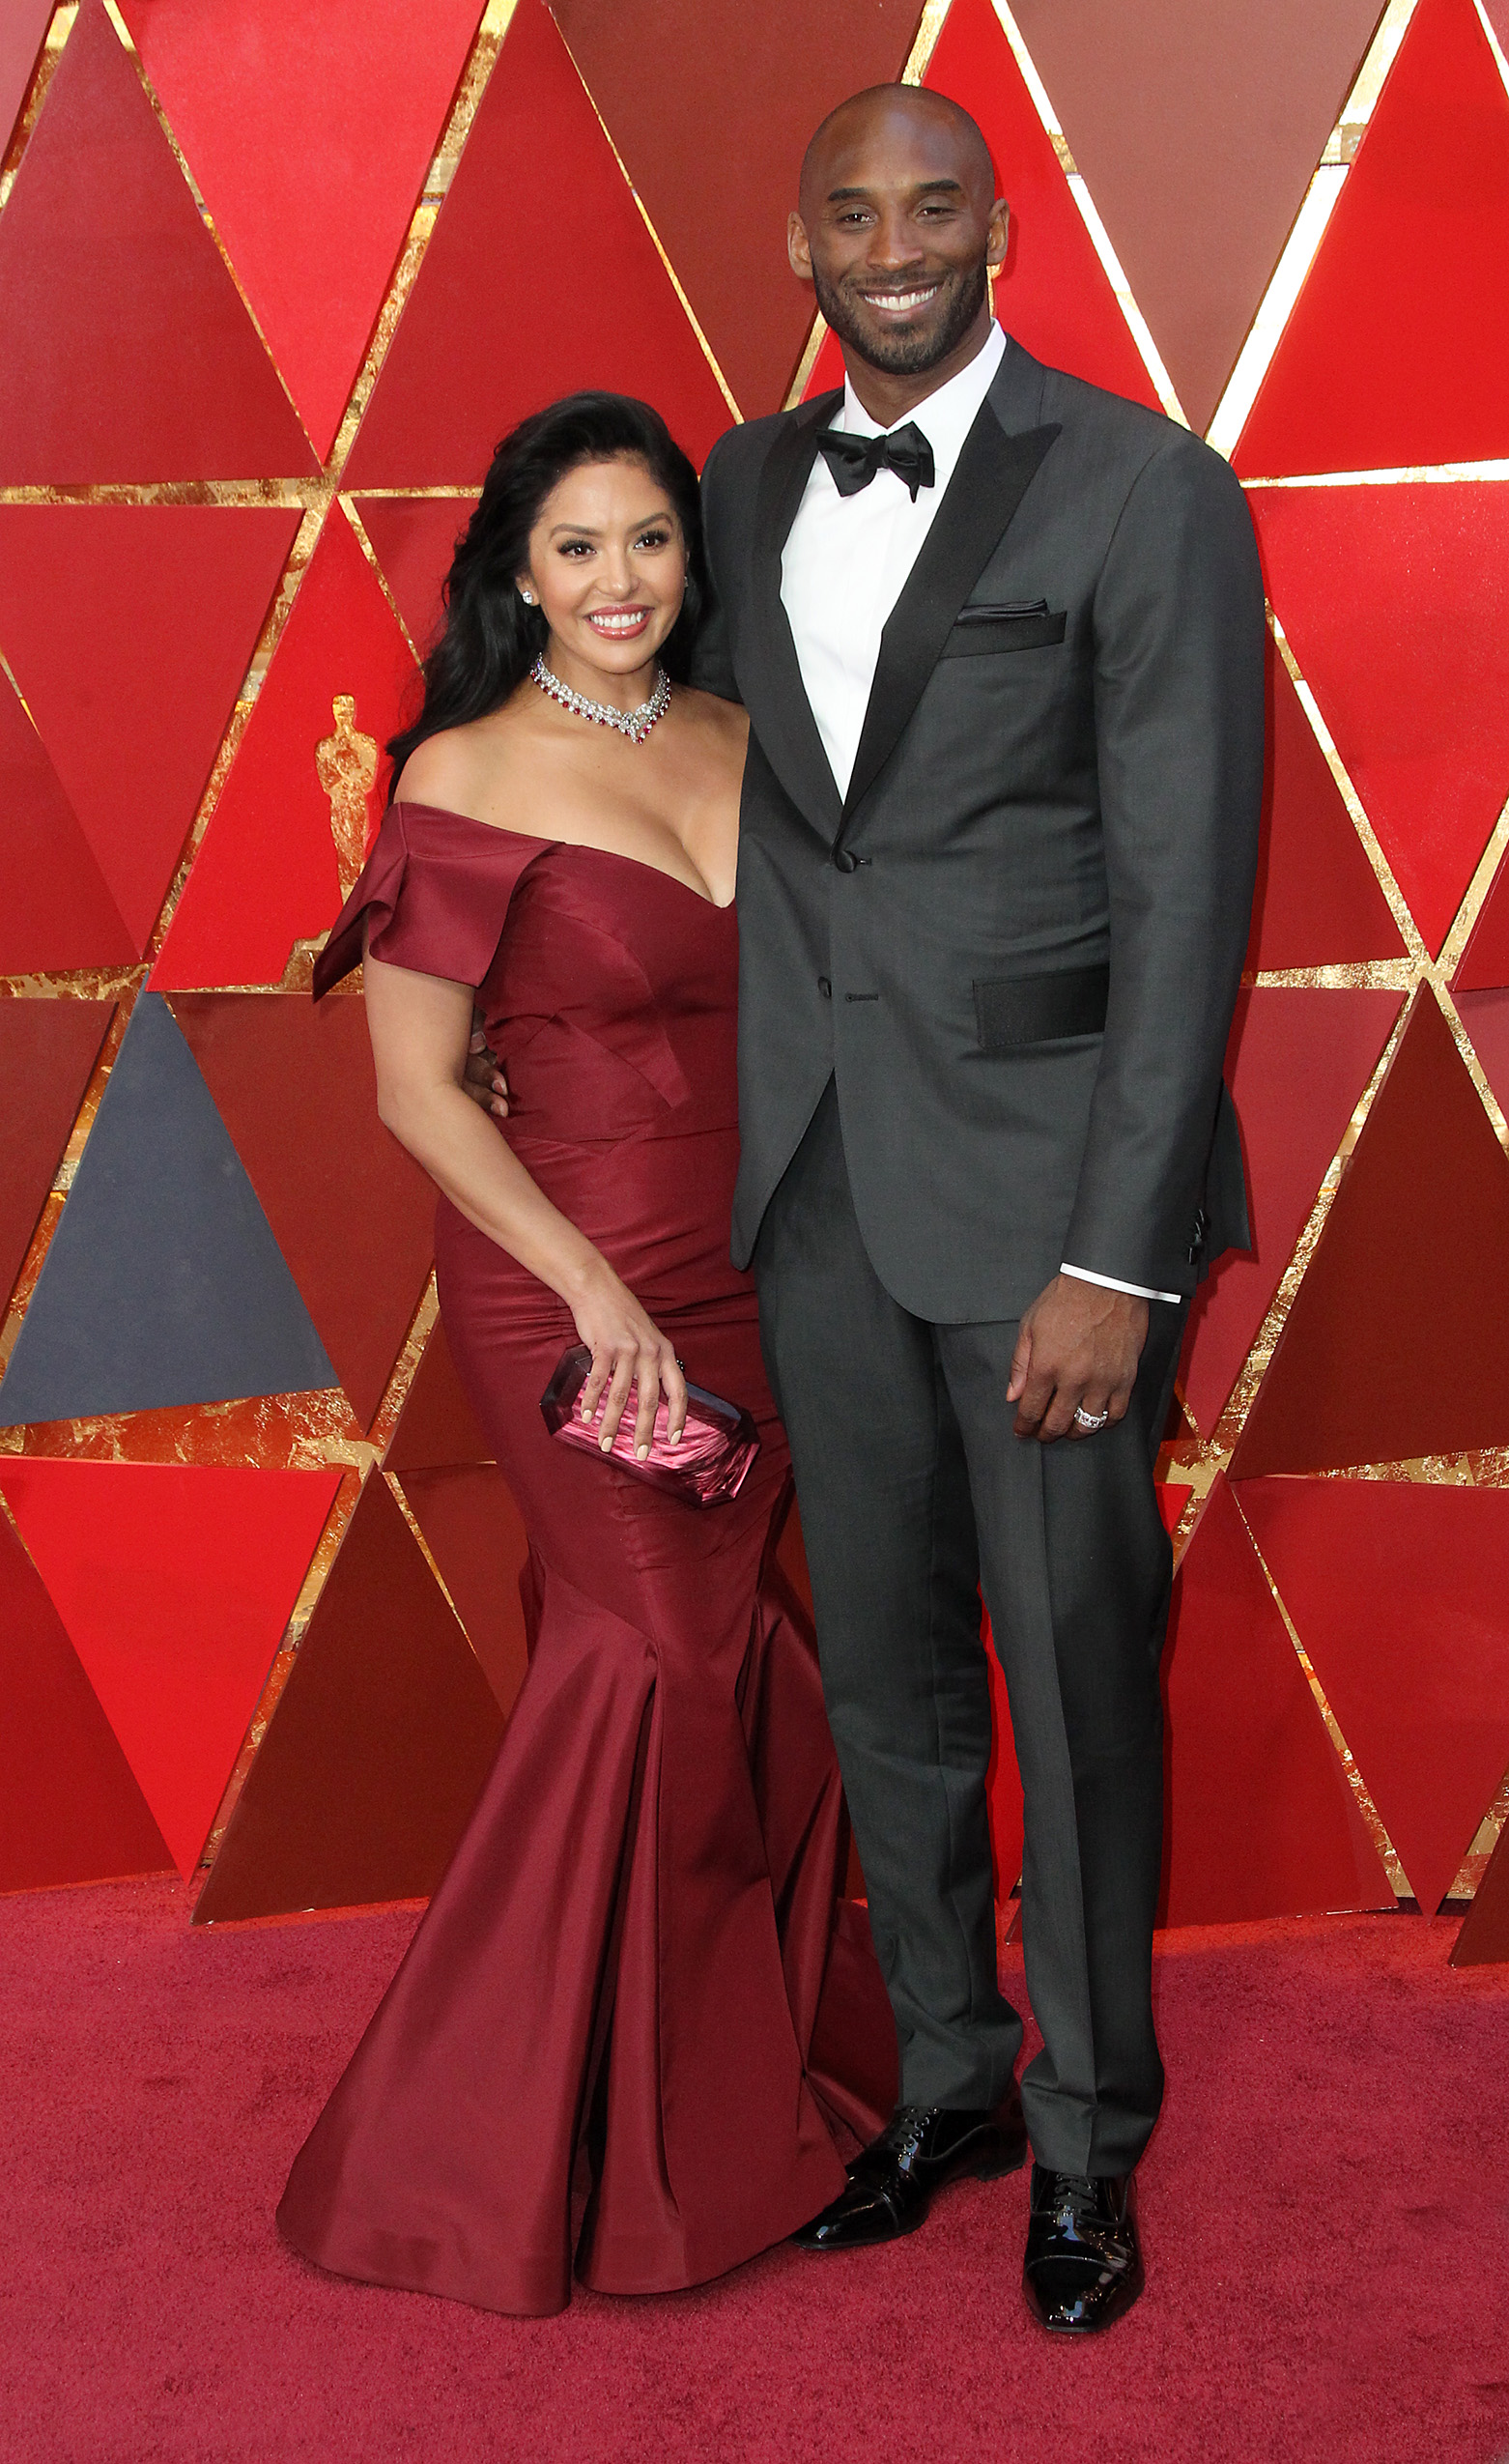 Vanessa Laine Bryant and Kobe Bryant arrive at the 90th Annual Academy Awards (Oscars) held at the Dolby Theater in Hollywood, California. (Image: Adriana M. Barraza/WENN.com)<p></p>